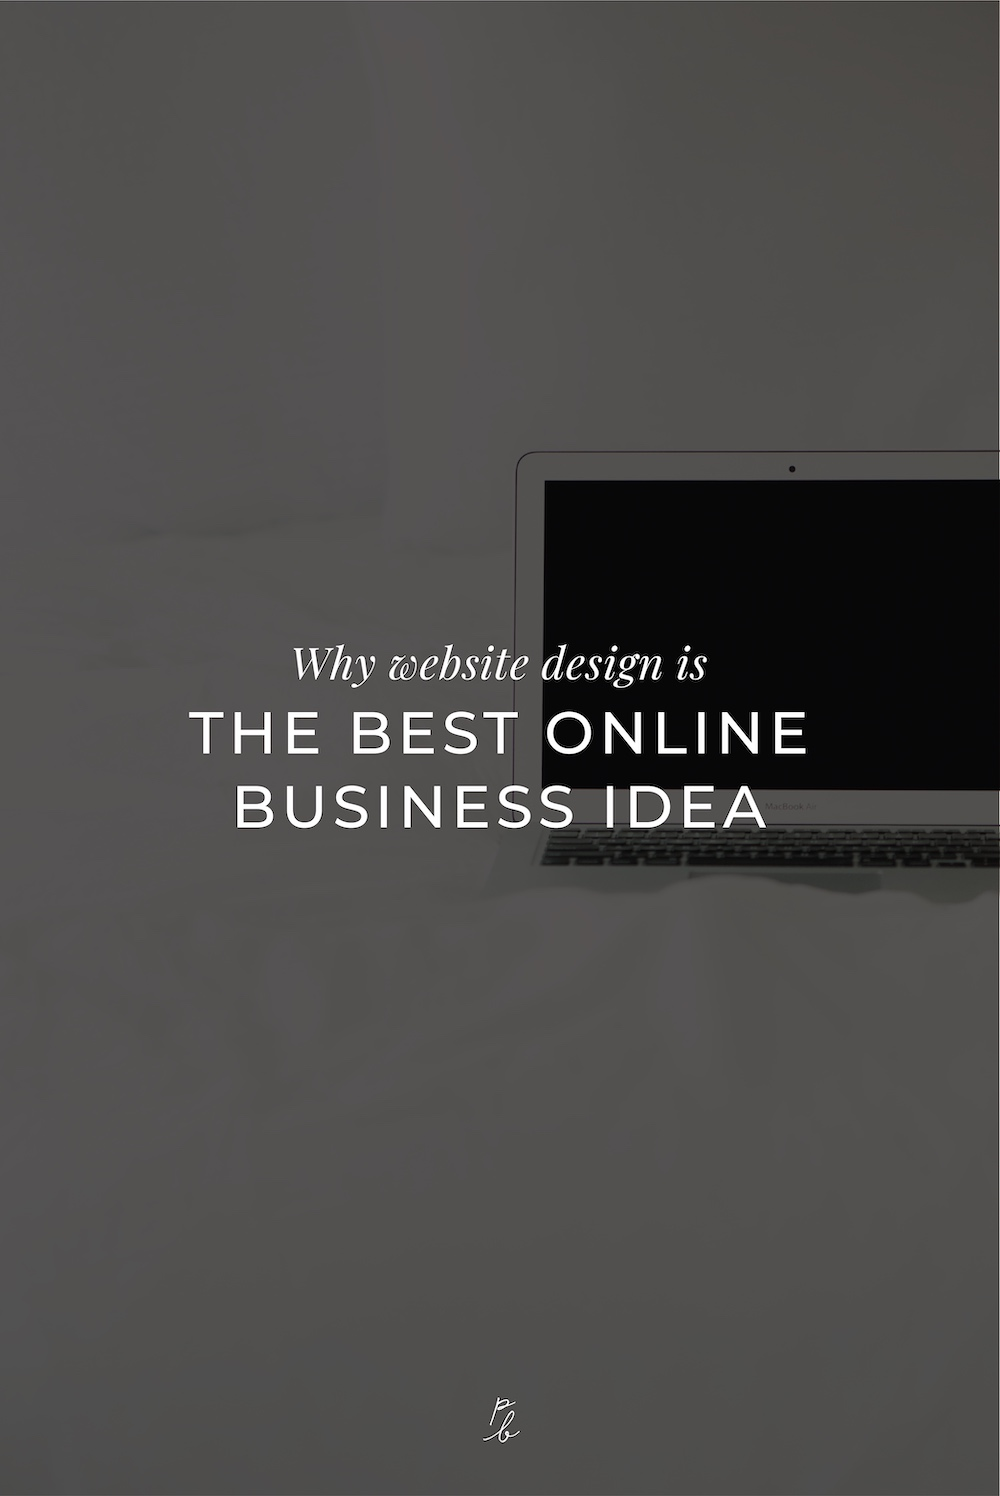 3-why website design is the best online business idea.jpg